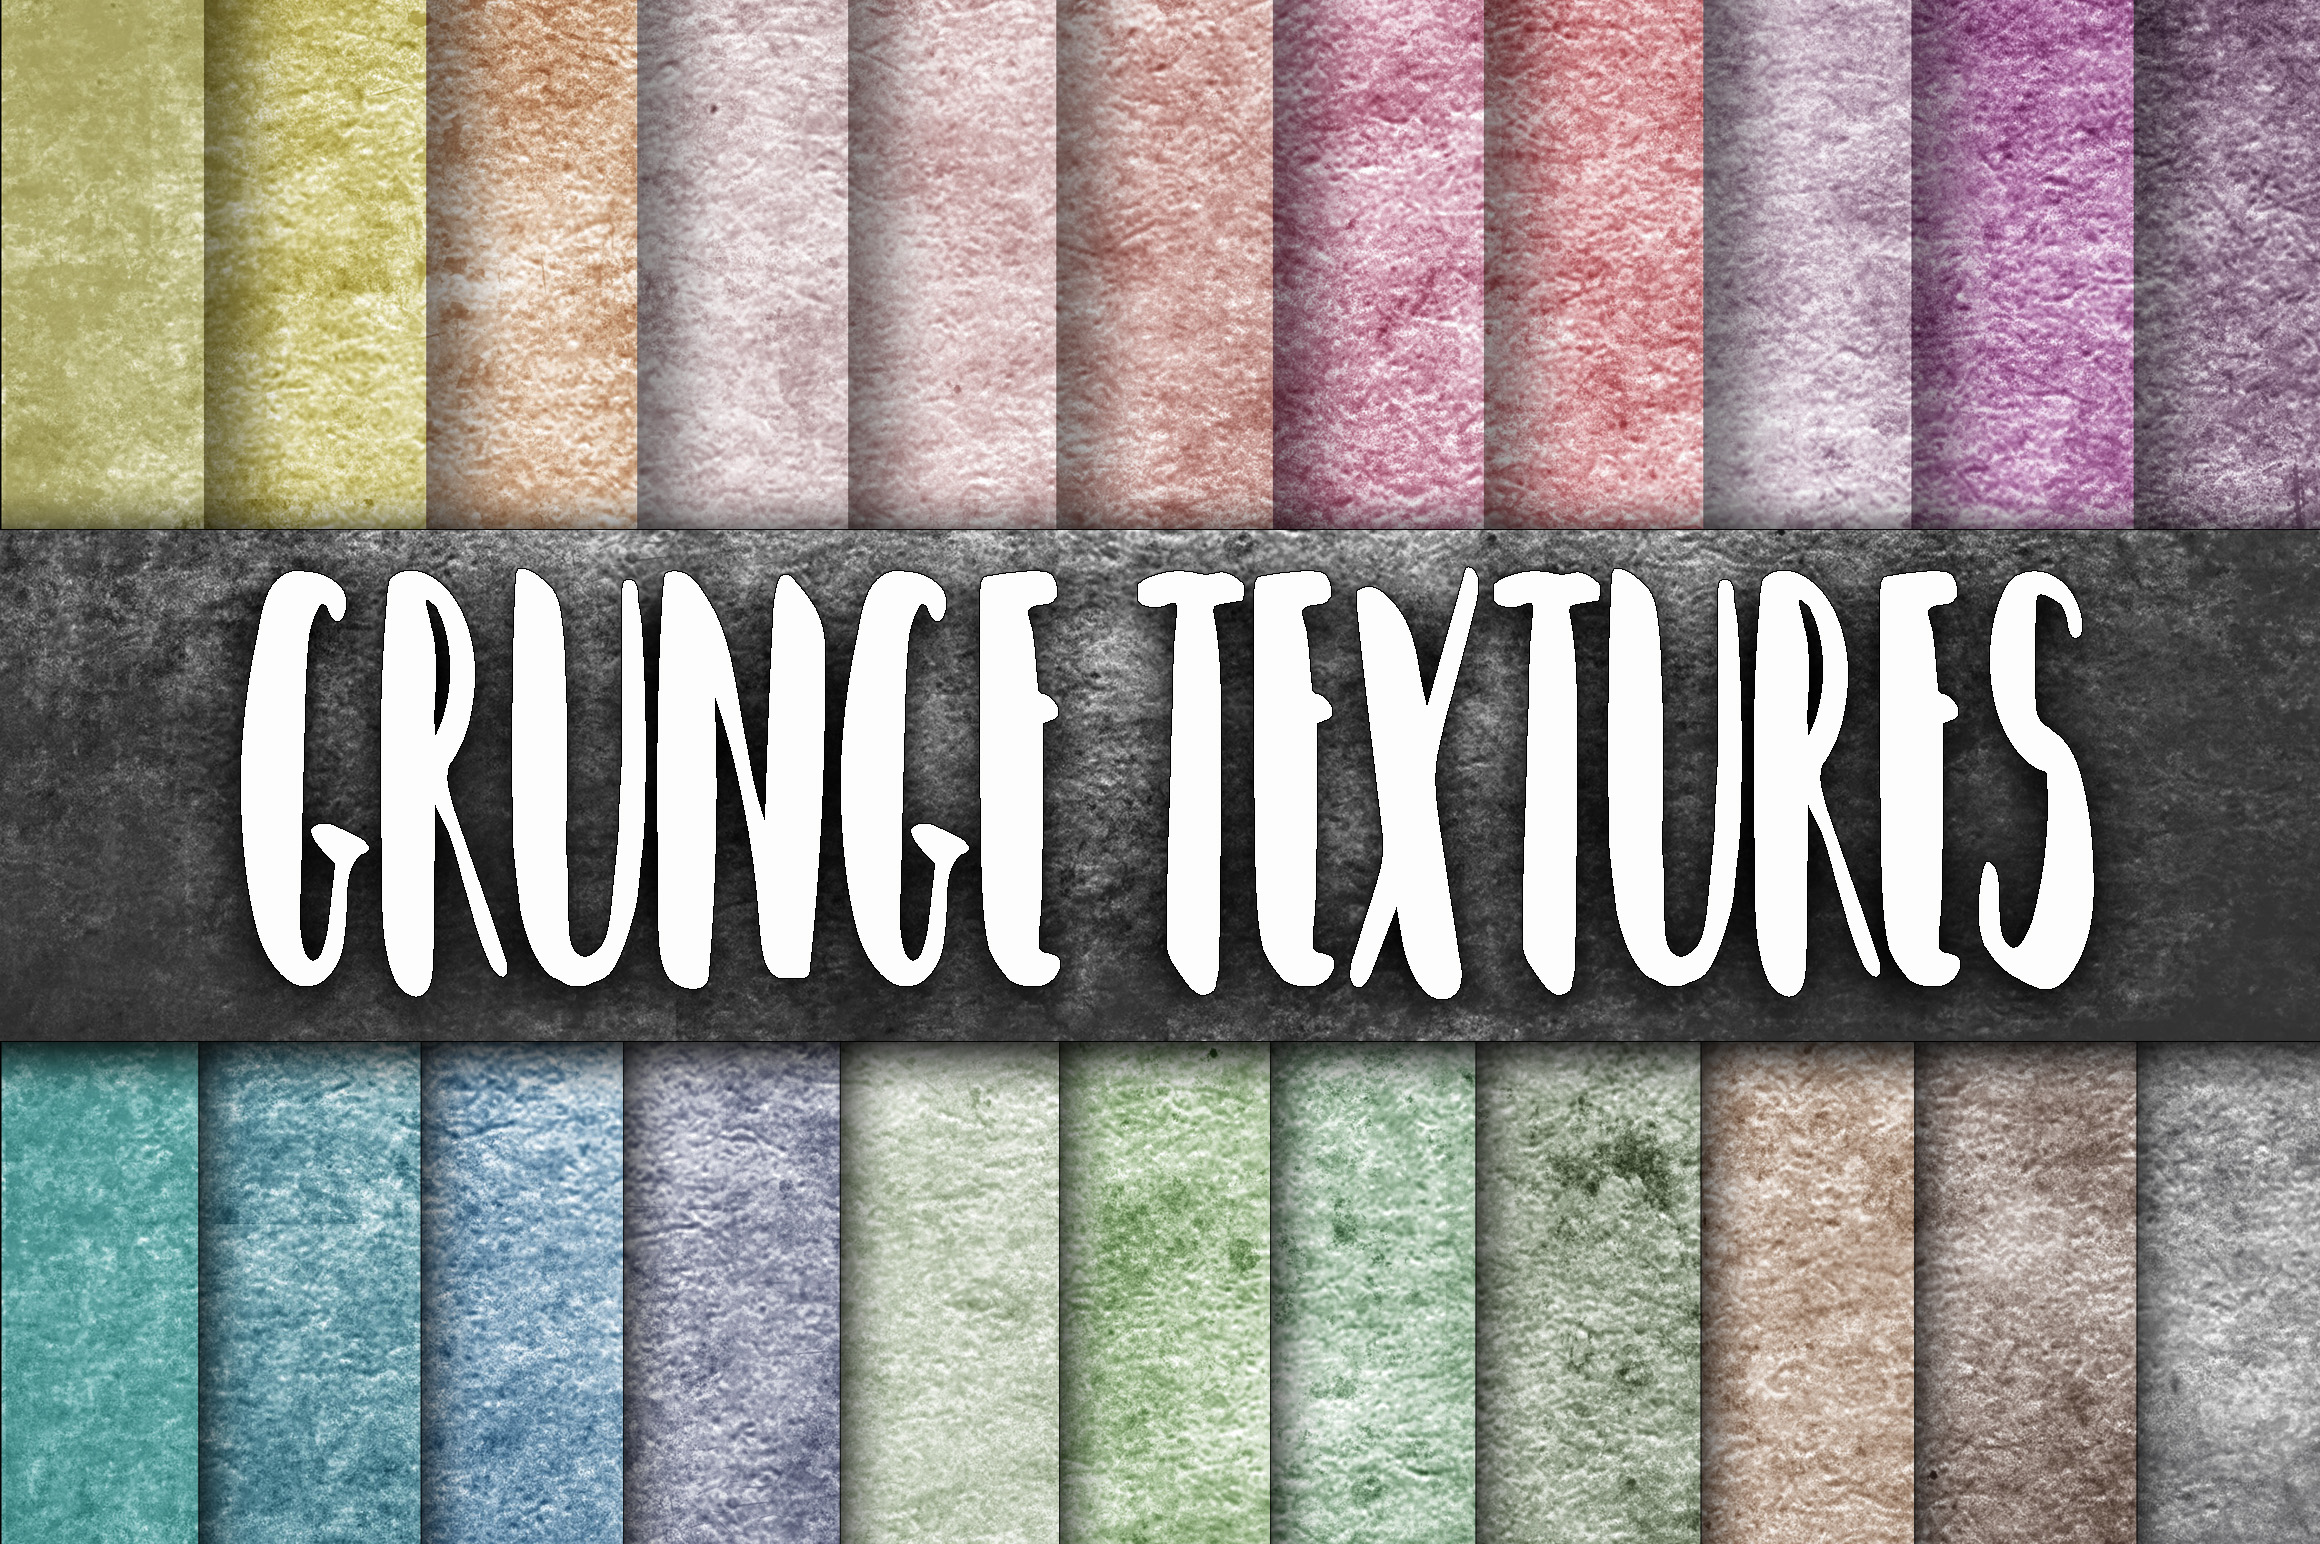 Grunge Textures Digital Papers Graphic Textures By oldmarketdesigns - Image 1